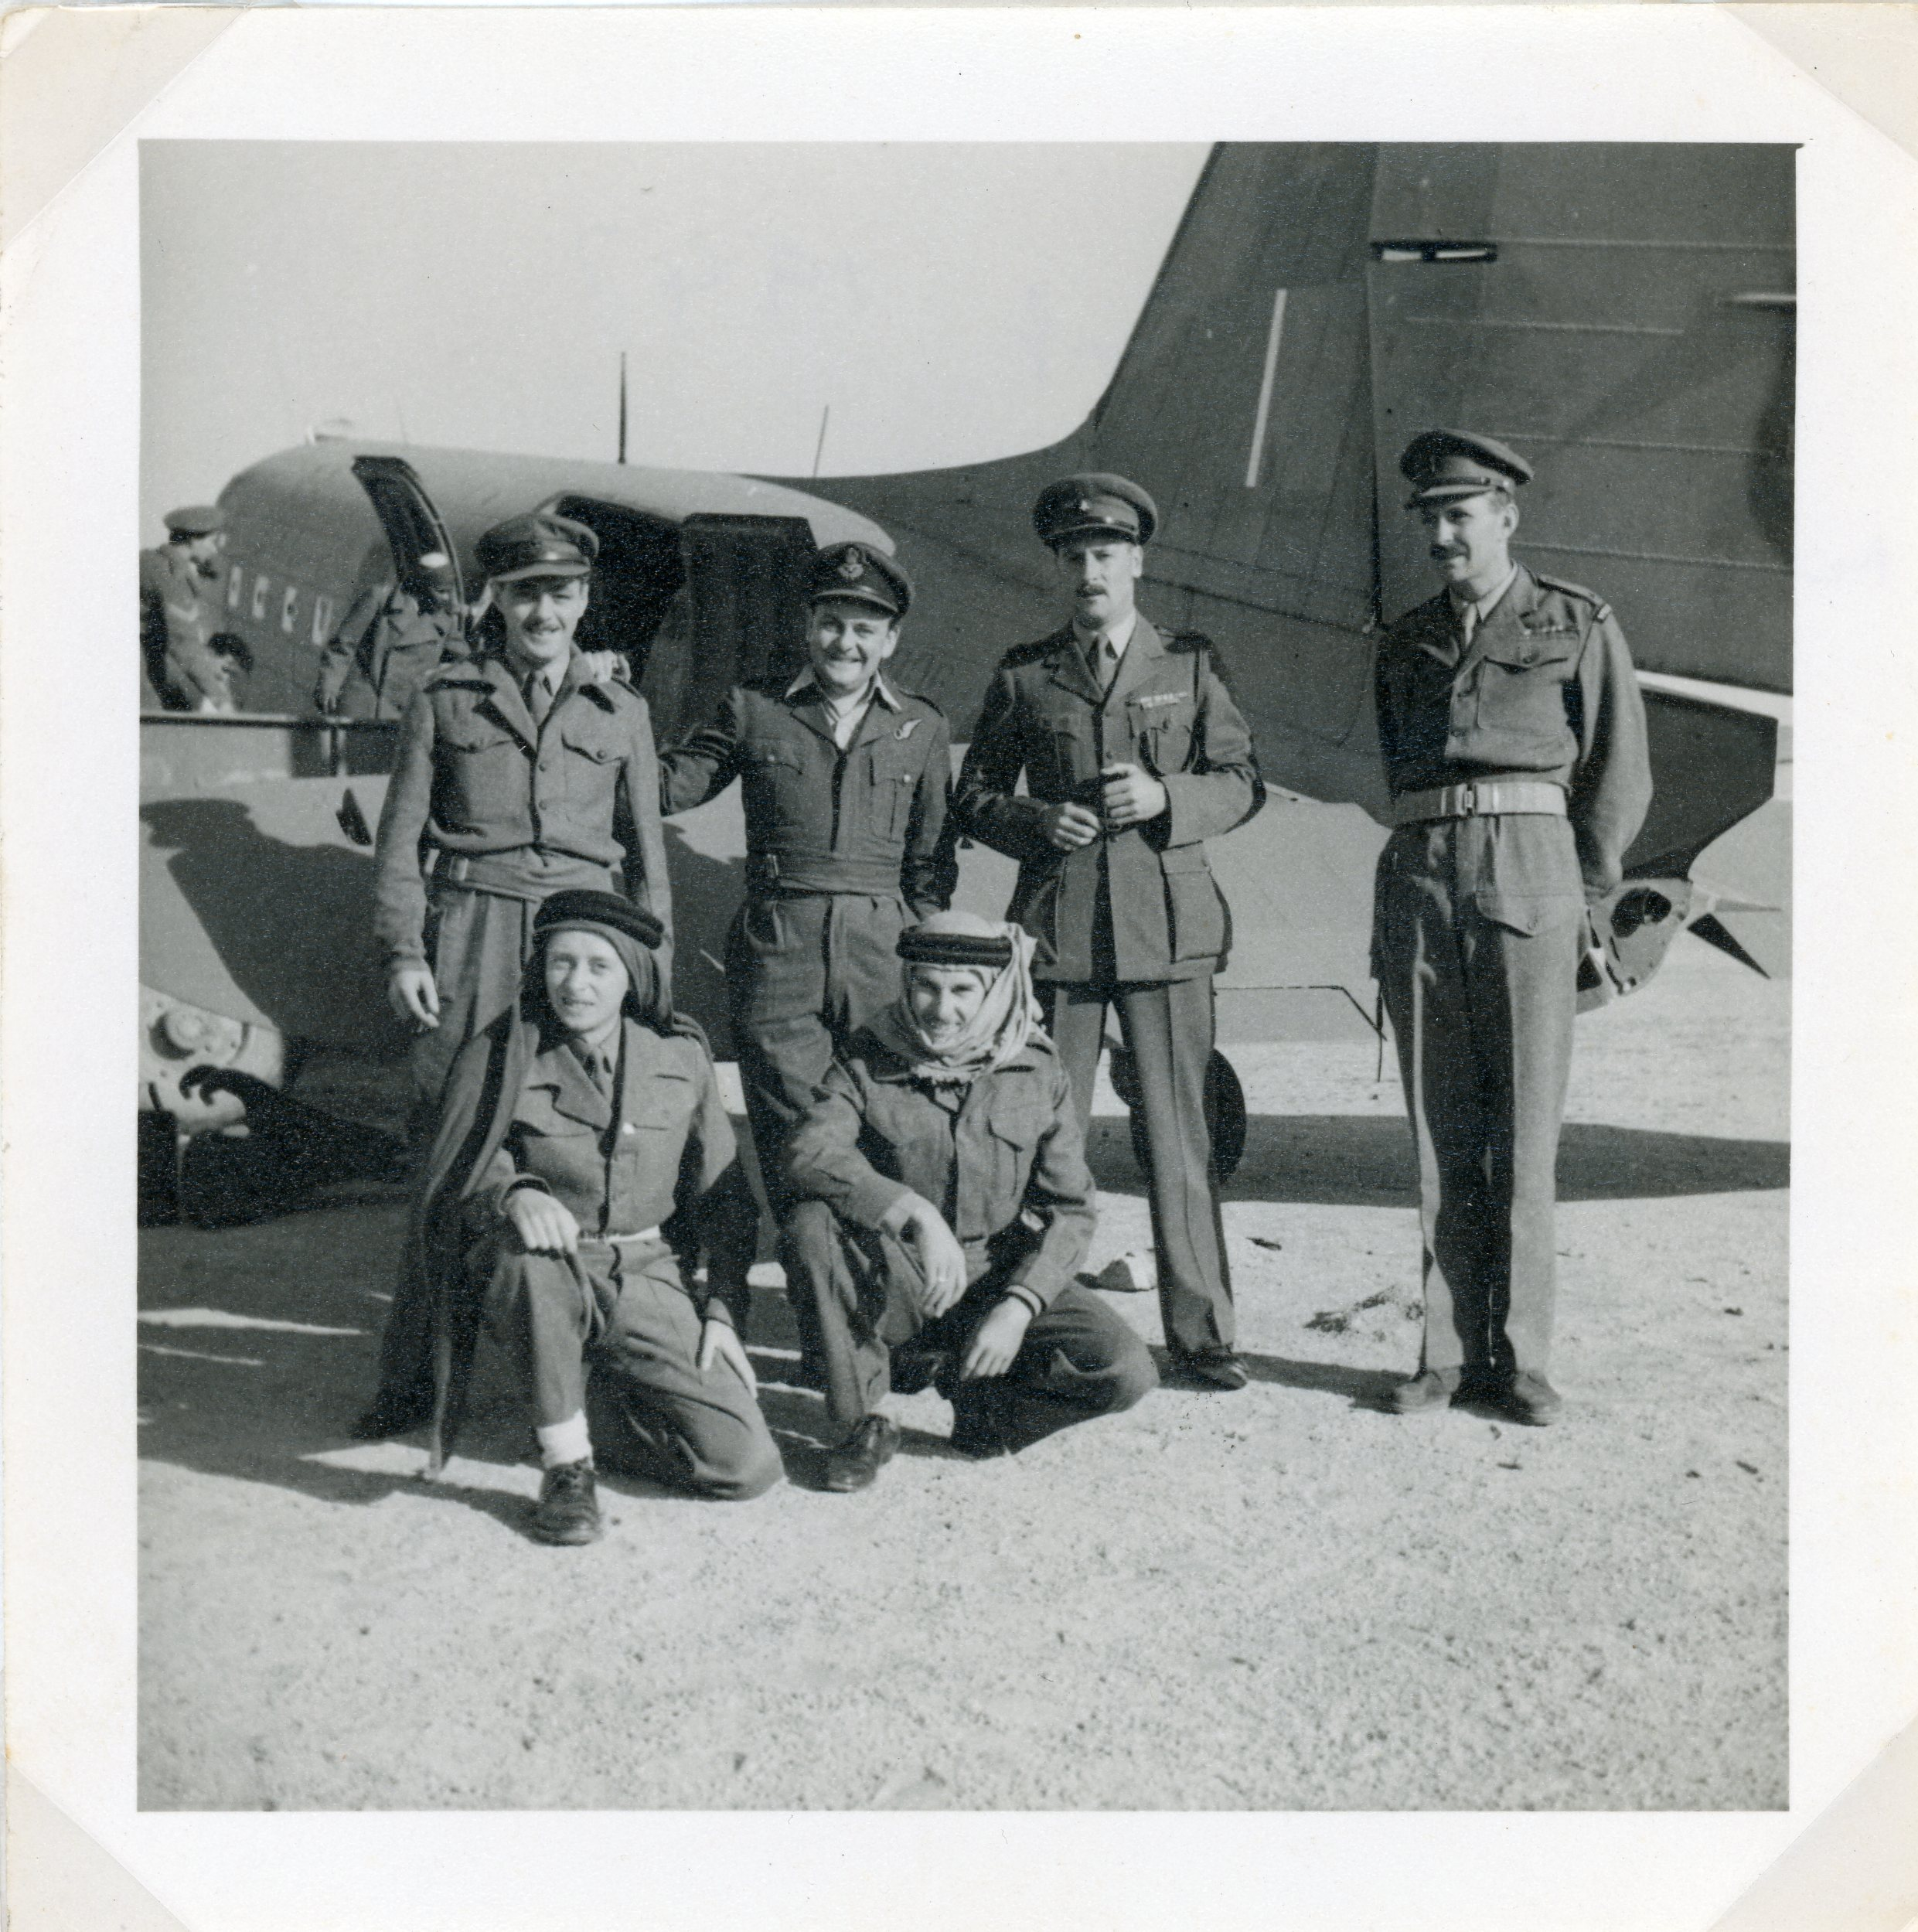 Fr Joseph Coombe Tenant in uniform in front of old aircraft